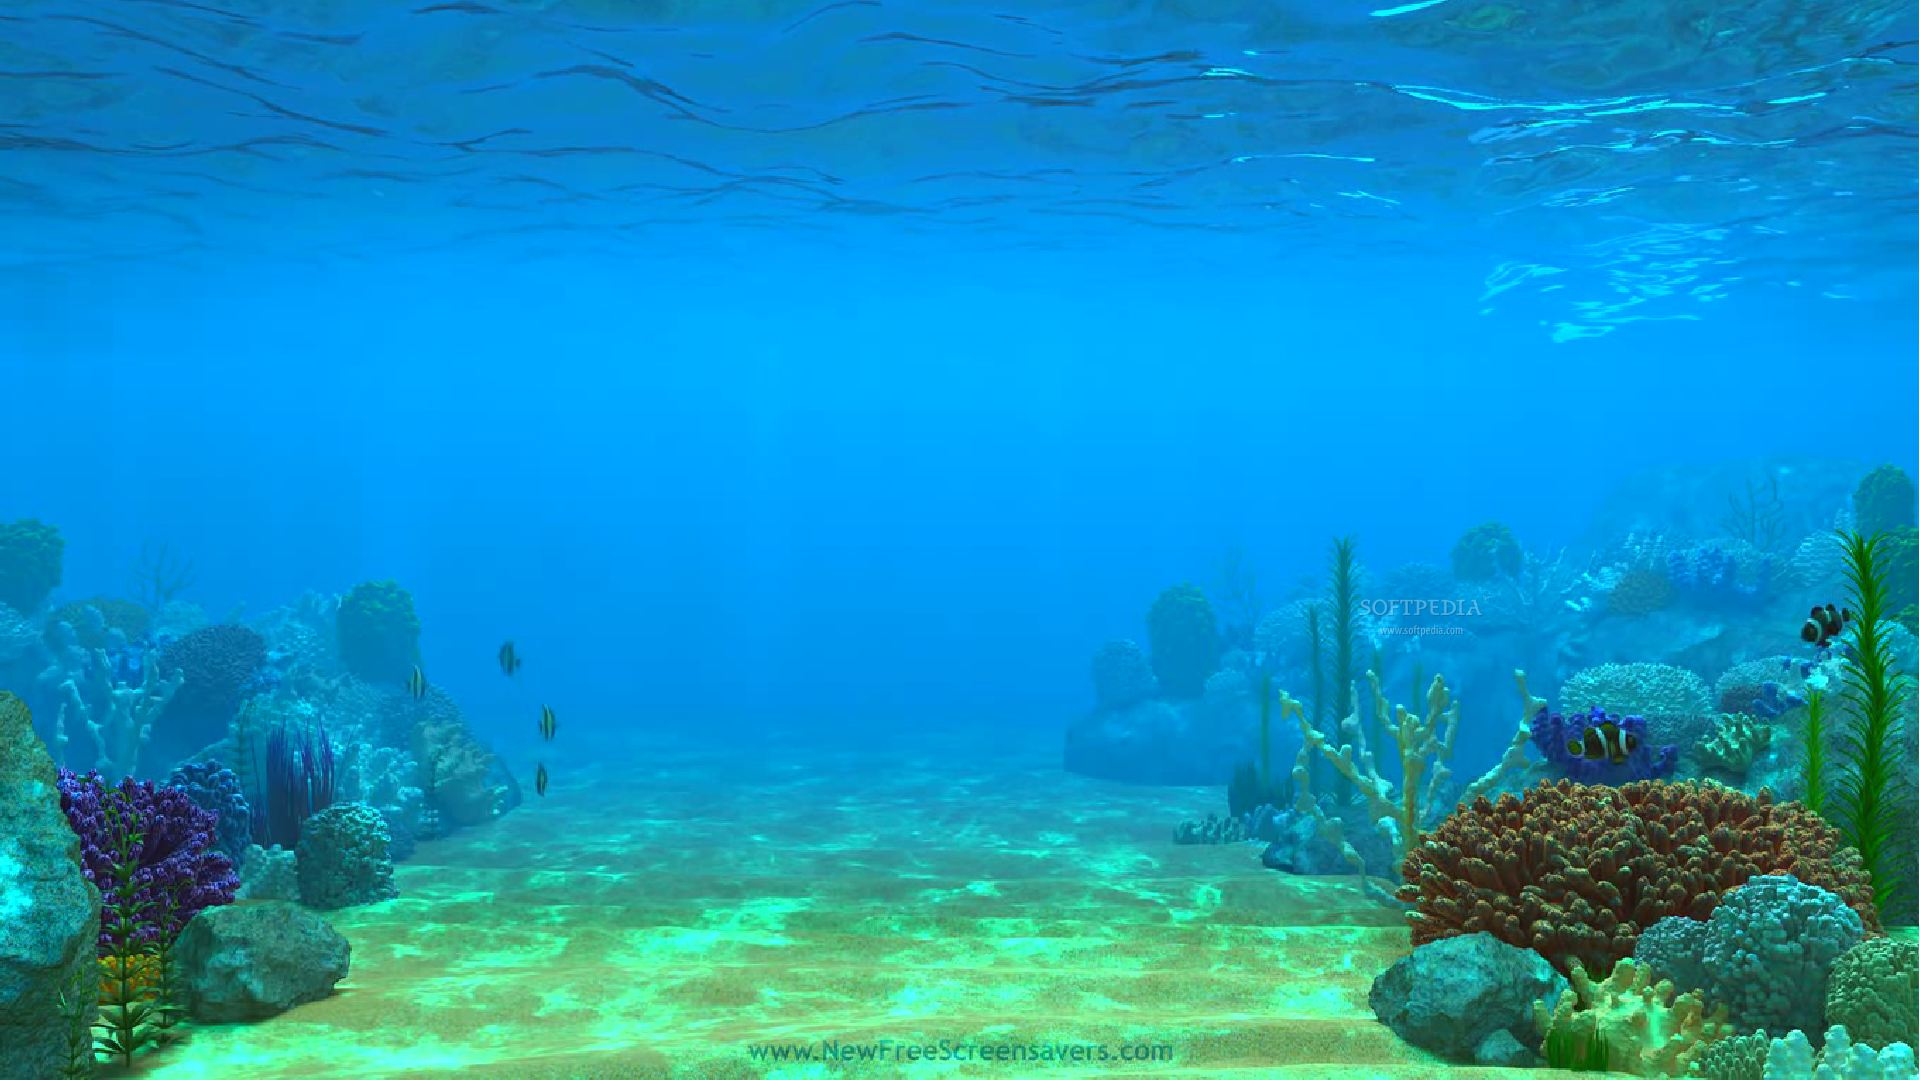 nfs3DUnderWaterLife4 screenshot 1 - This is an example of how the following animated screensaver will be displayed on your monitor.